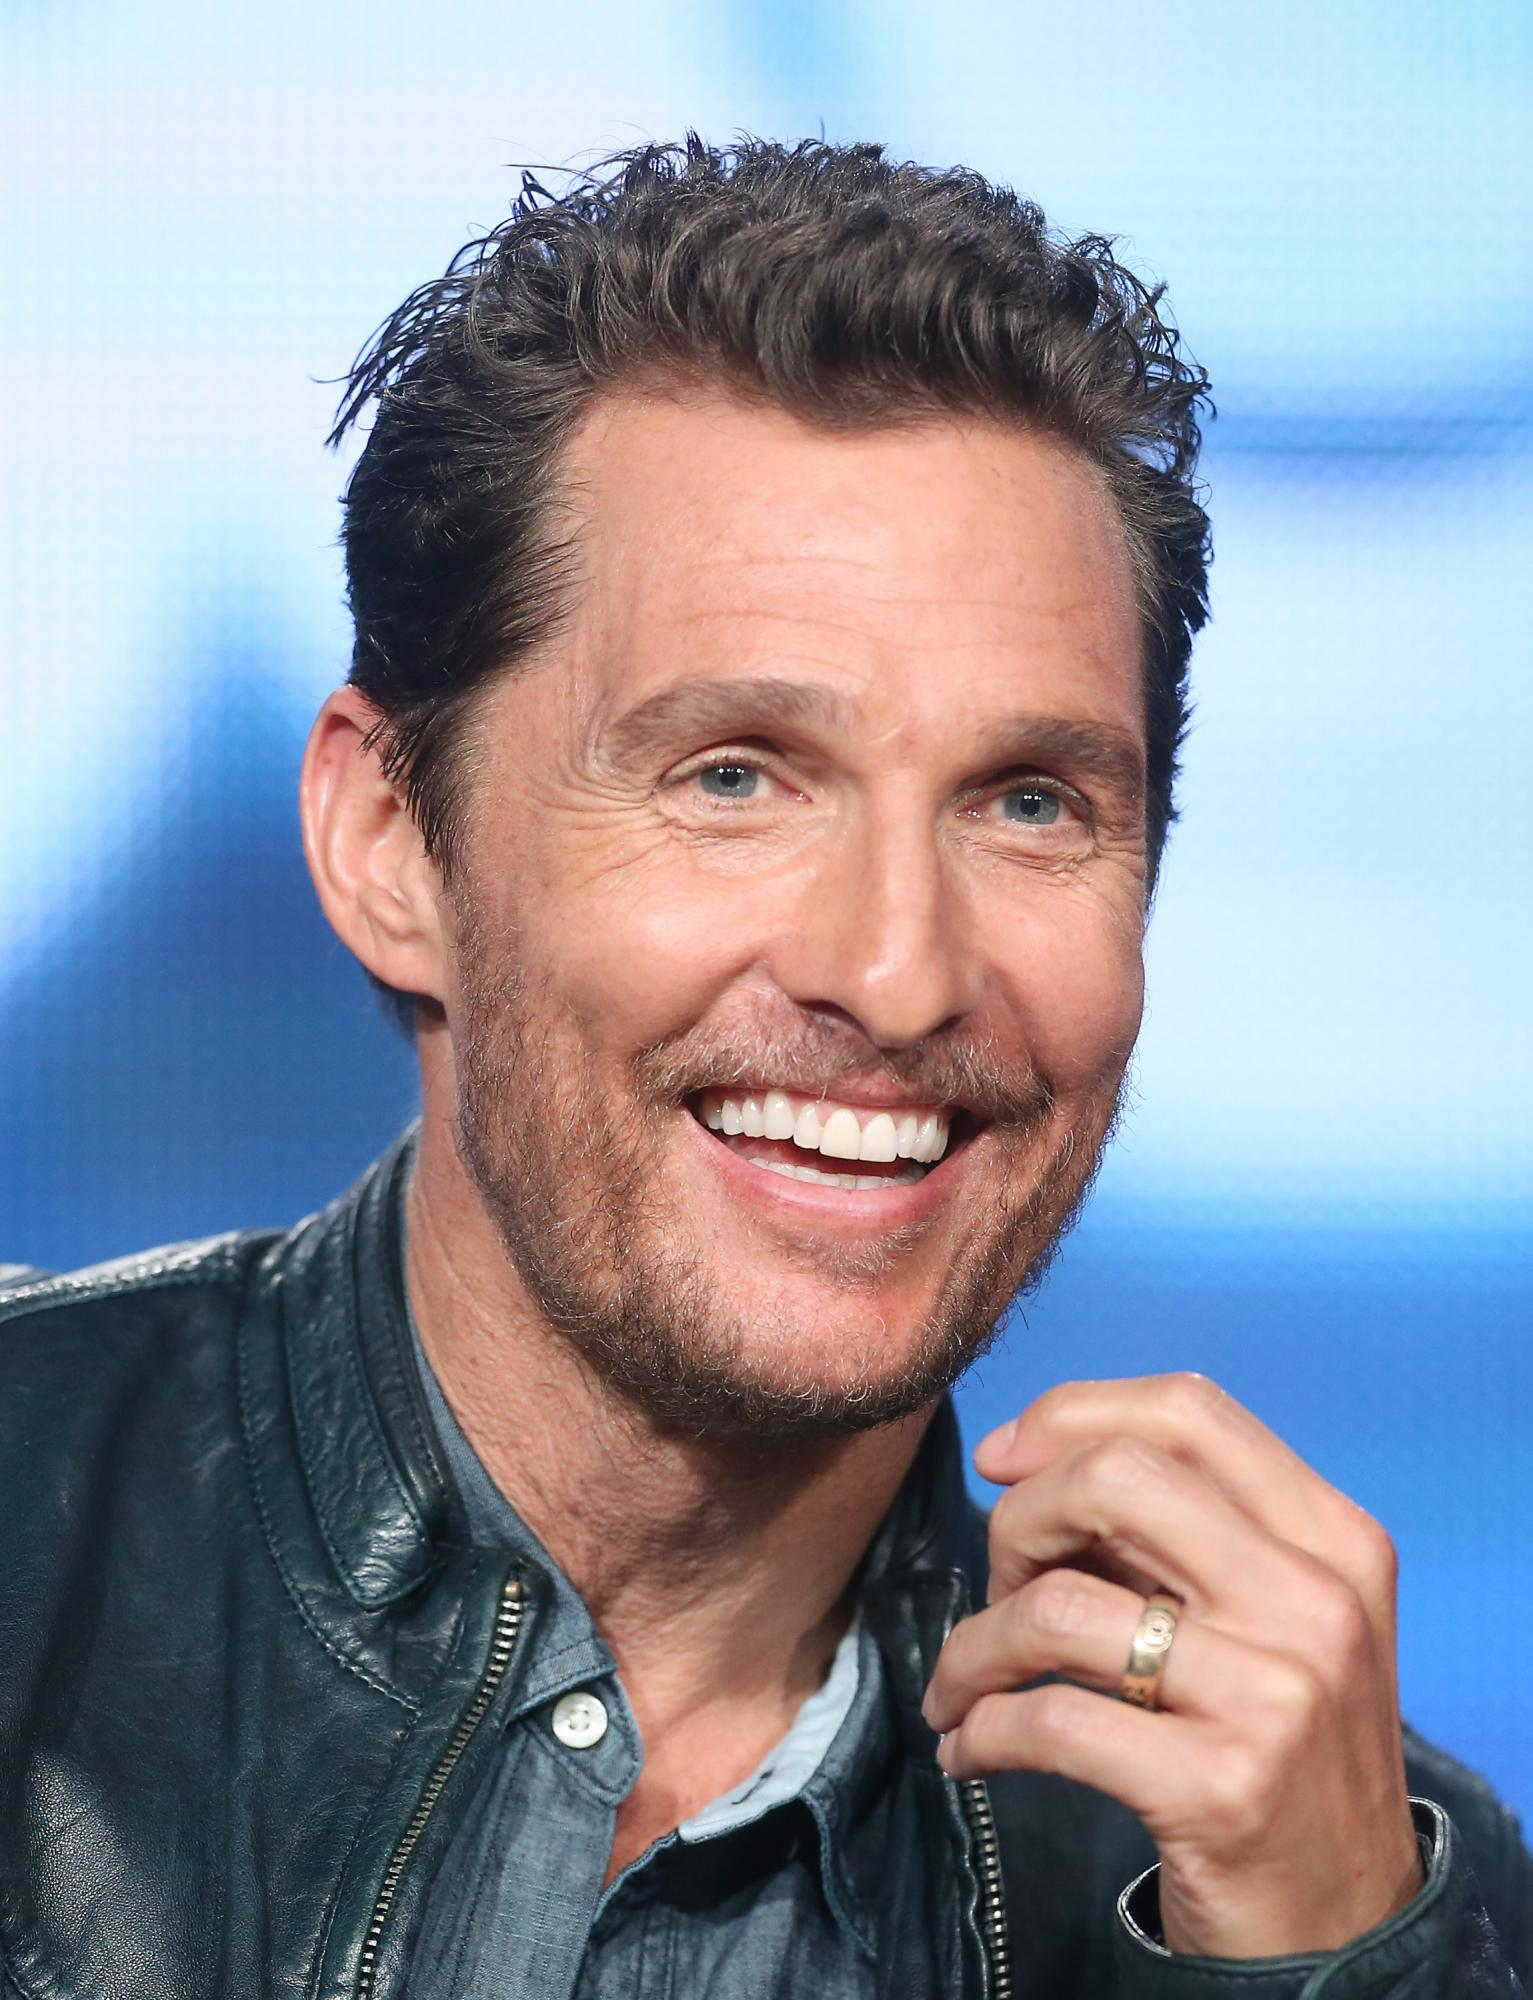 Matthew McConaughey Takes Cue from Jennifer Aniston: Enters the Instagram World on His 50th Birthday